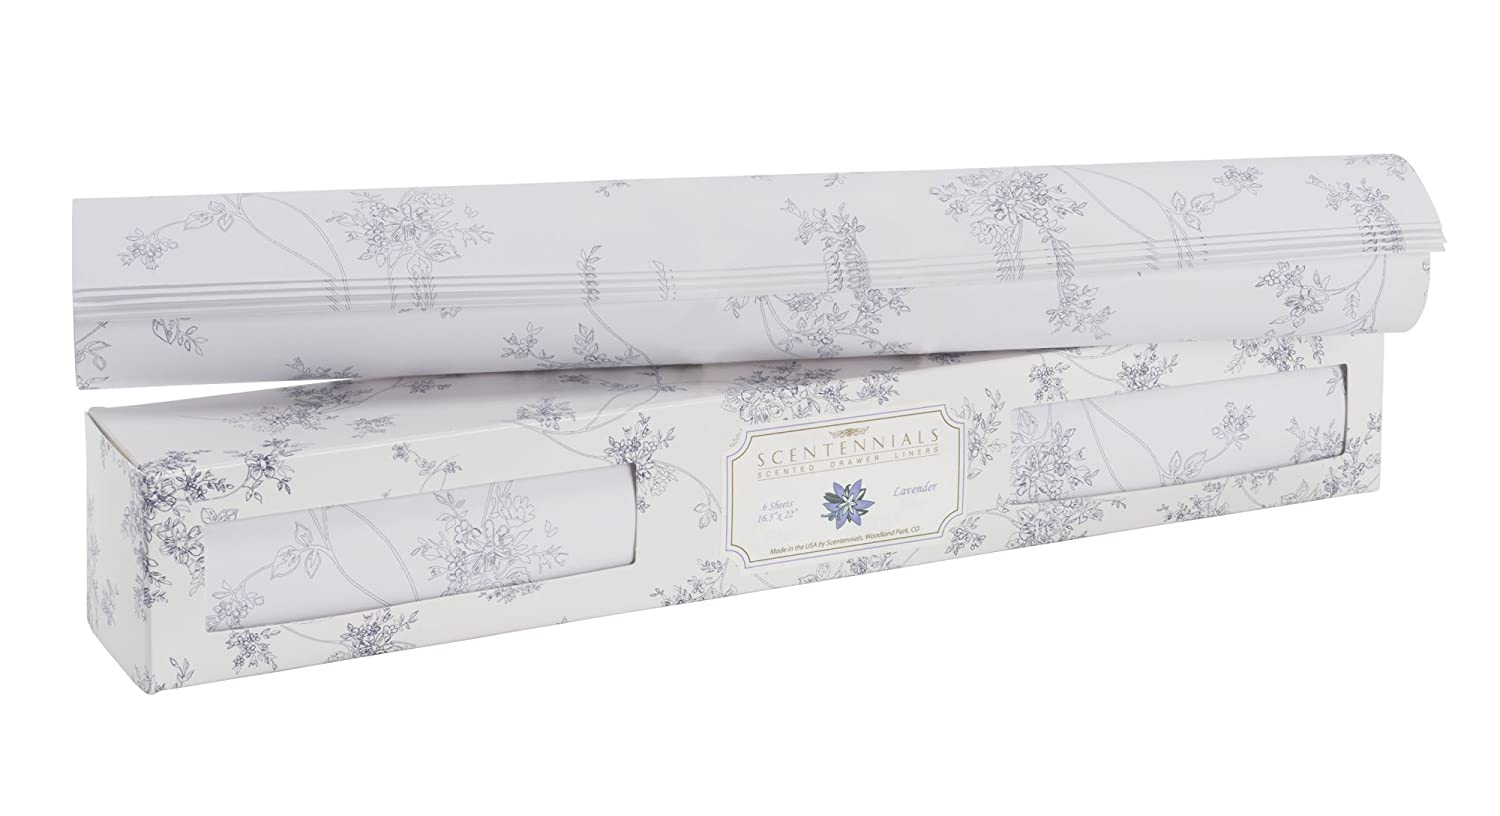 Original Series Scented Drawer Liners From Scentennials (Lavender) Scentennials Products